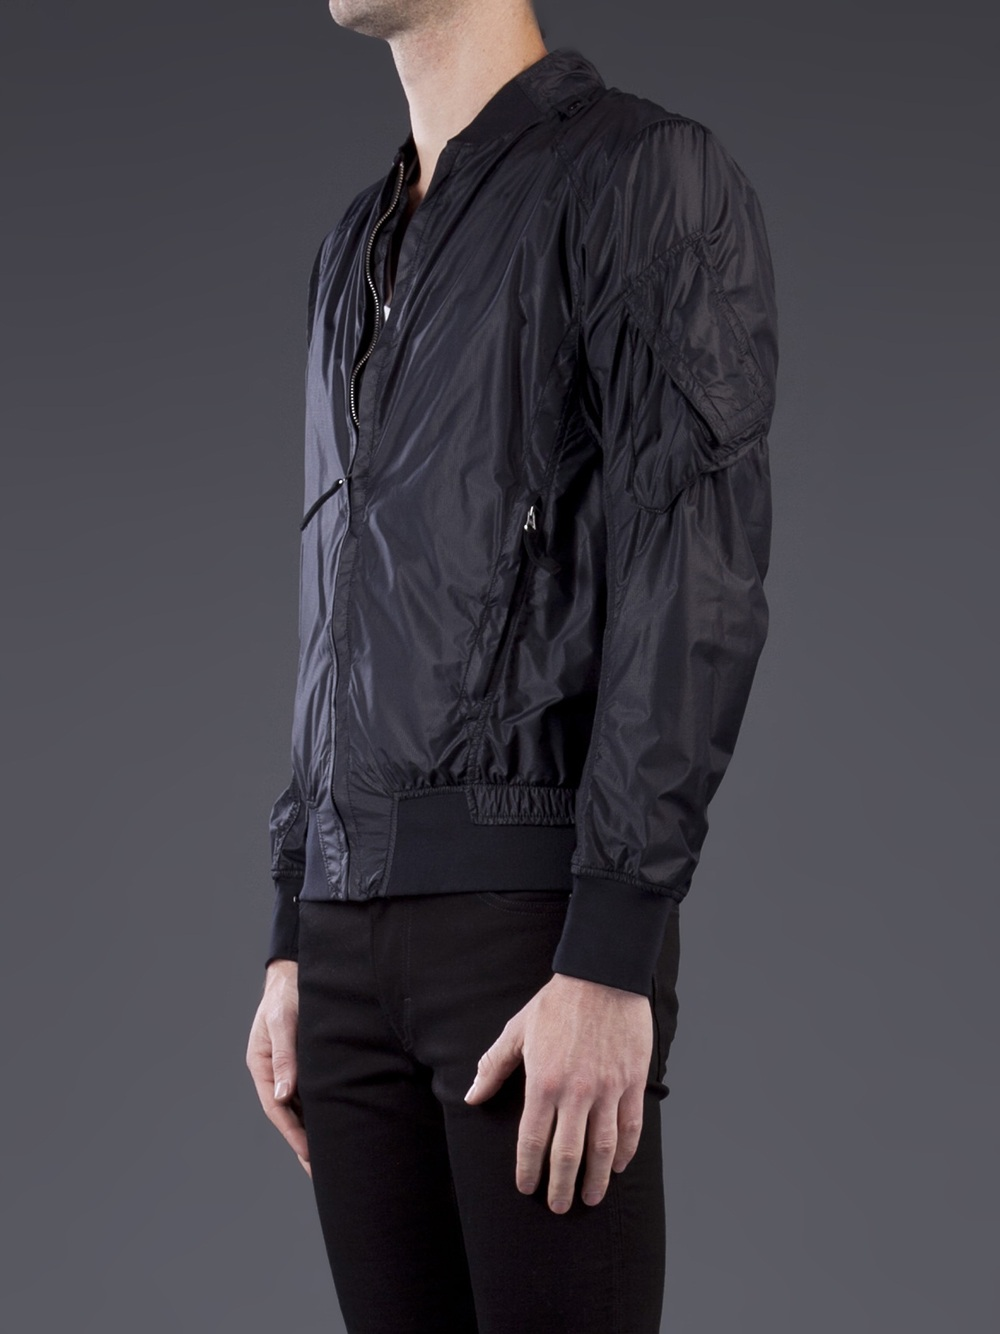 stone island windbreaker jacket in black for men lyst. Black Bedroom Furniture Sets. Home Design Ideas